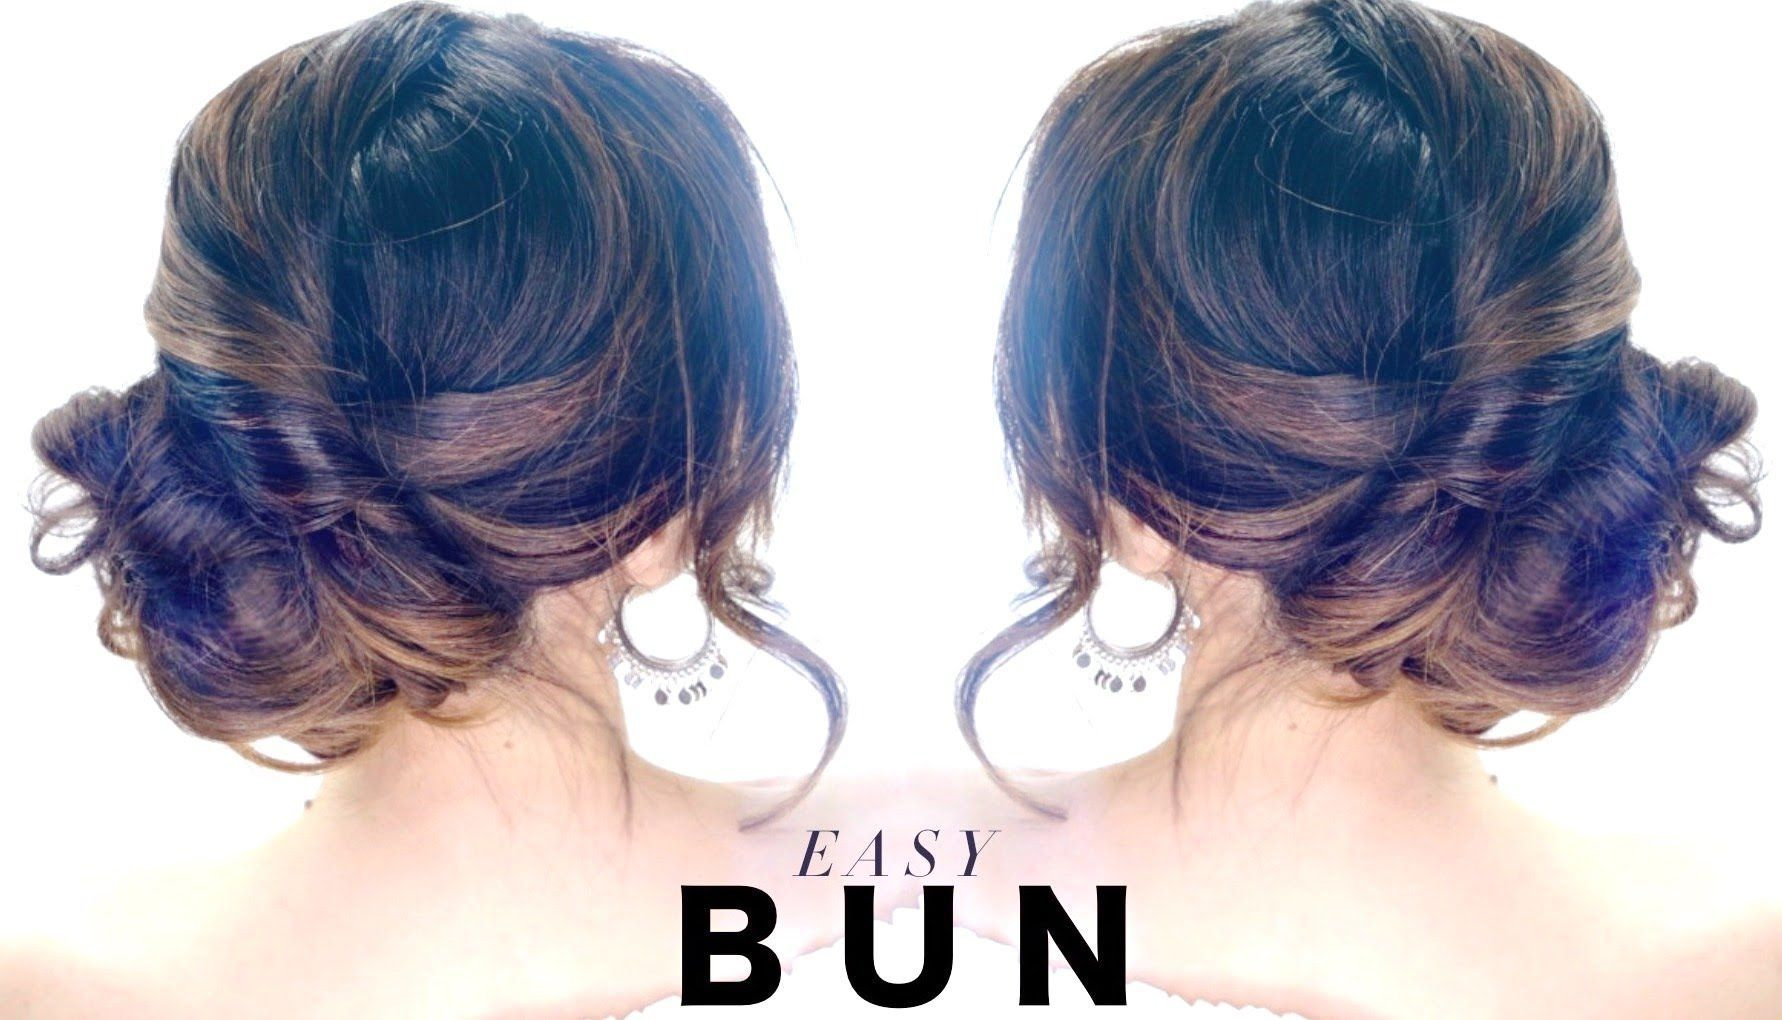 Hair tutorial how to do quick u easy side bun hairstyles for